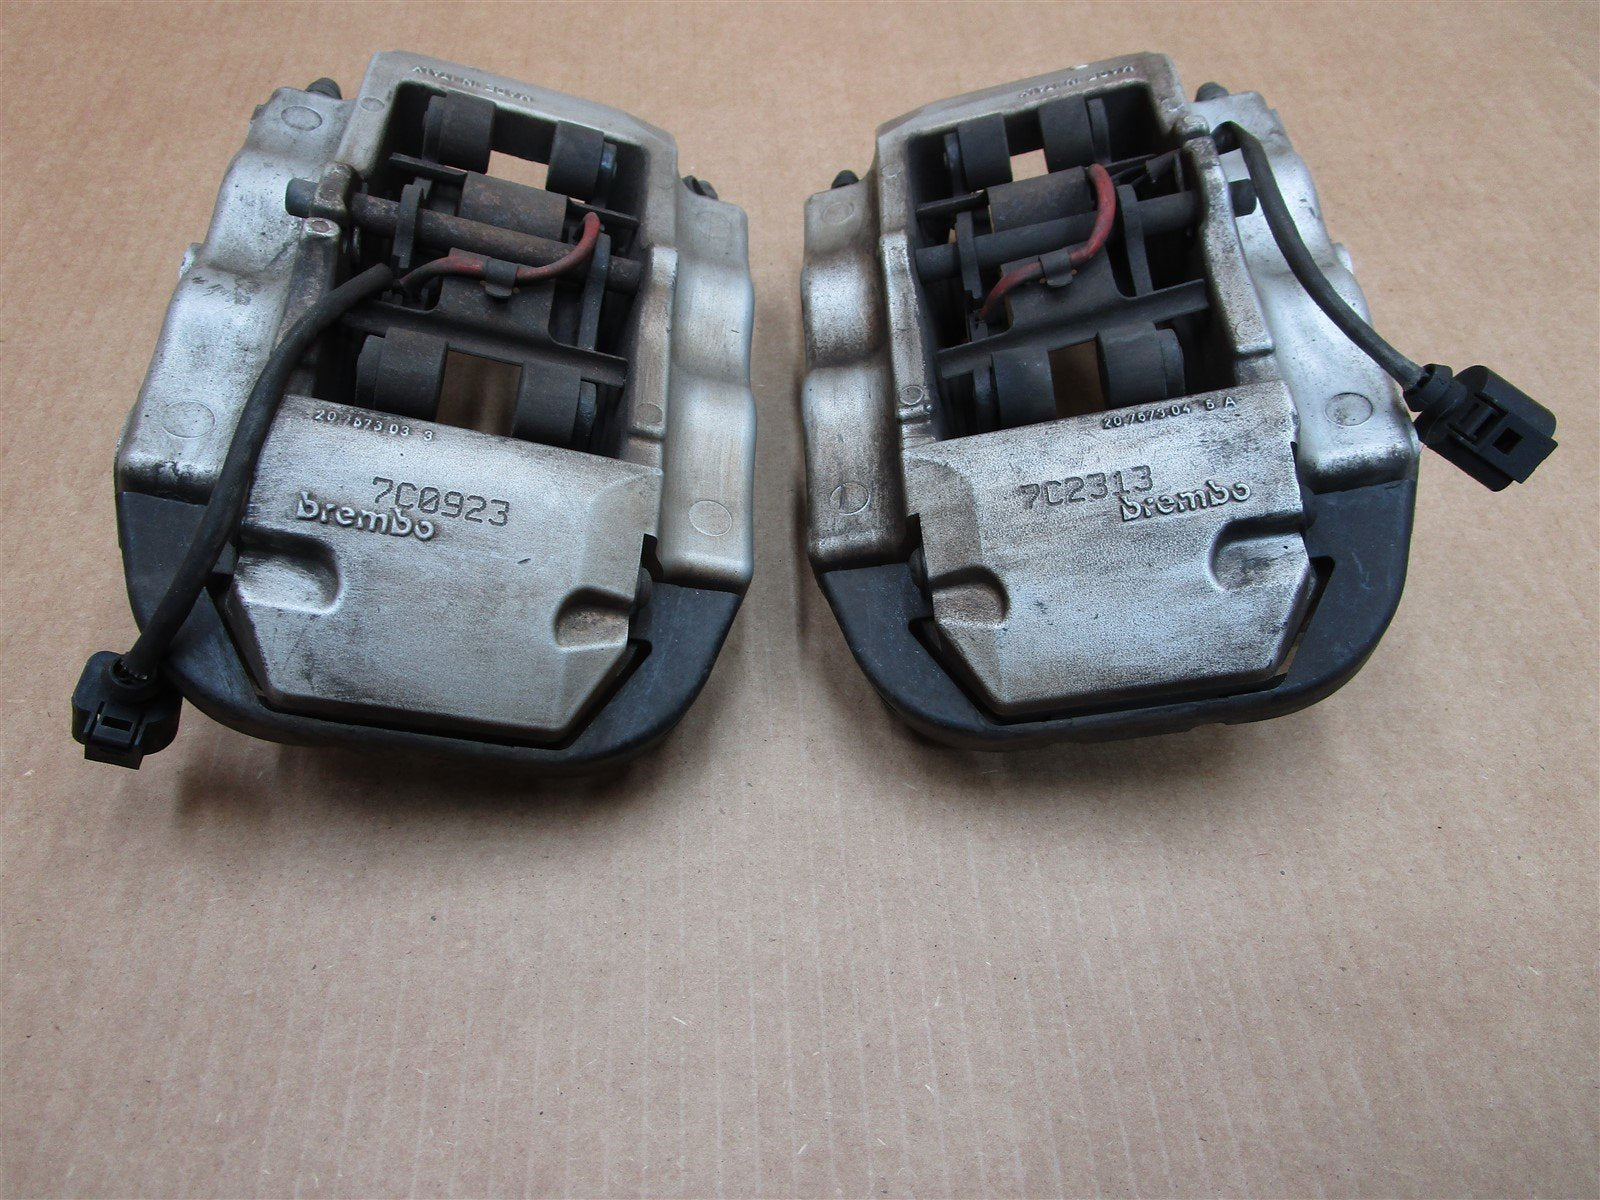 08 Cayenne S AWD Porsche 957 2 REAR BRAKE CALIPERS 207573D33 207673045A 134,919